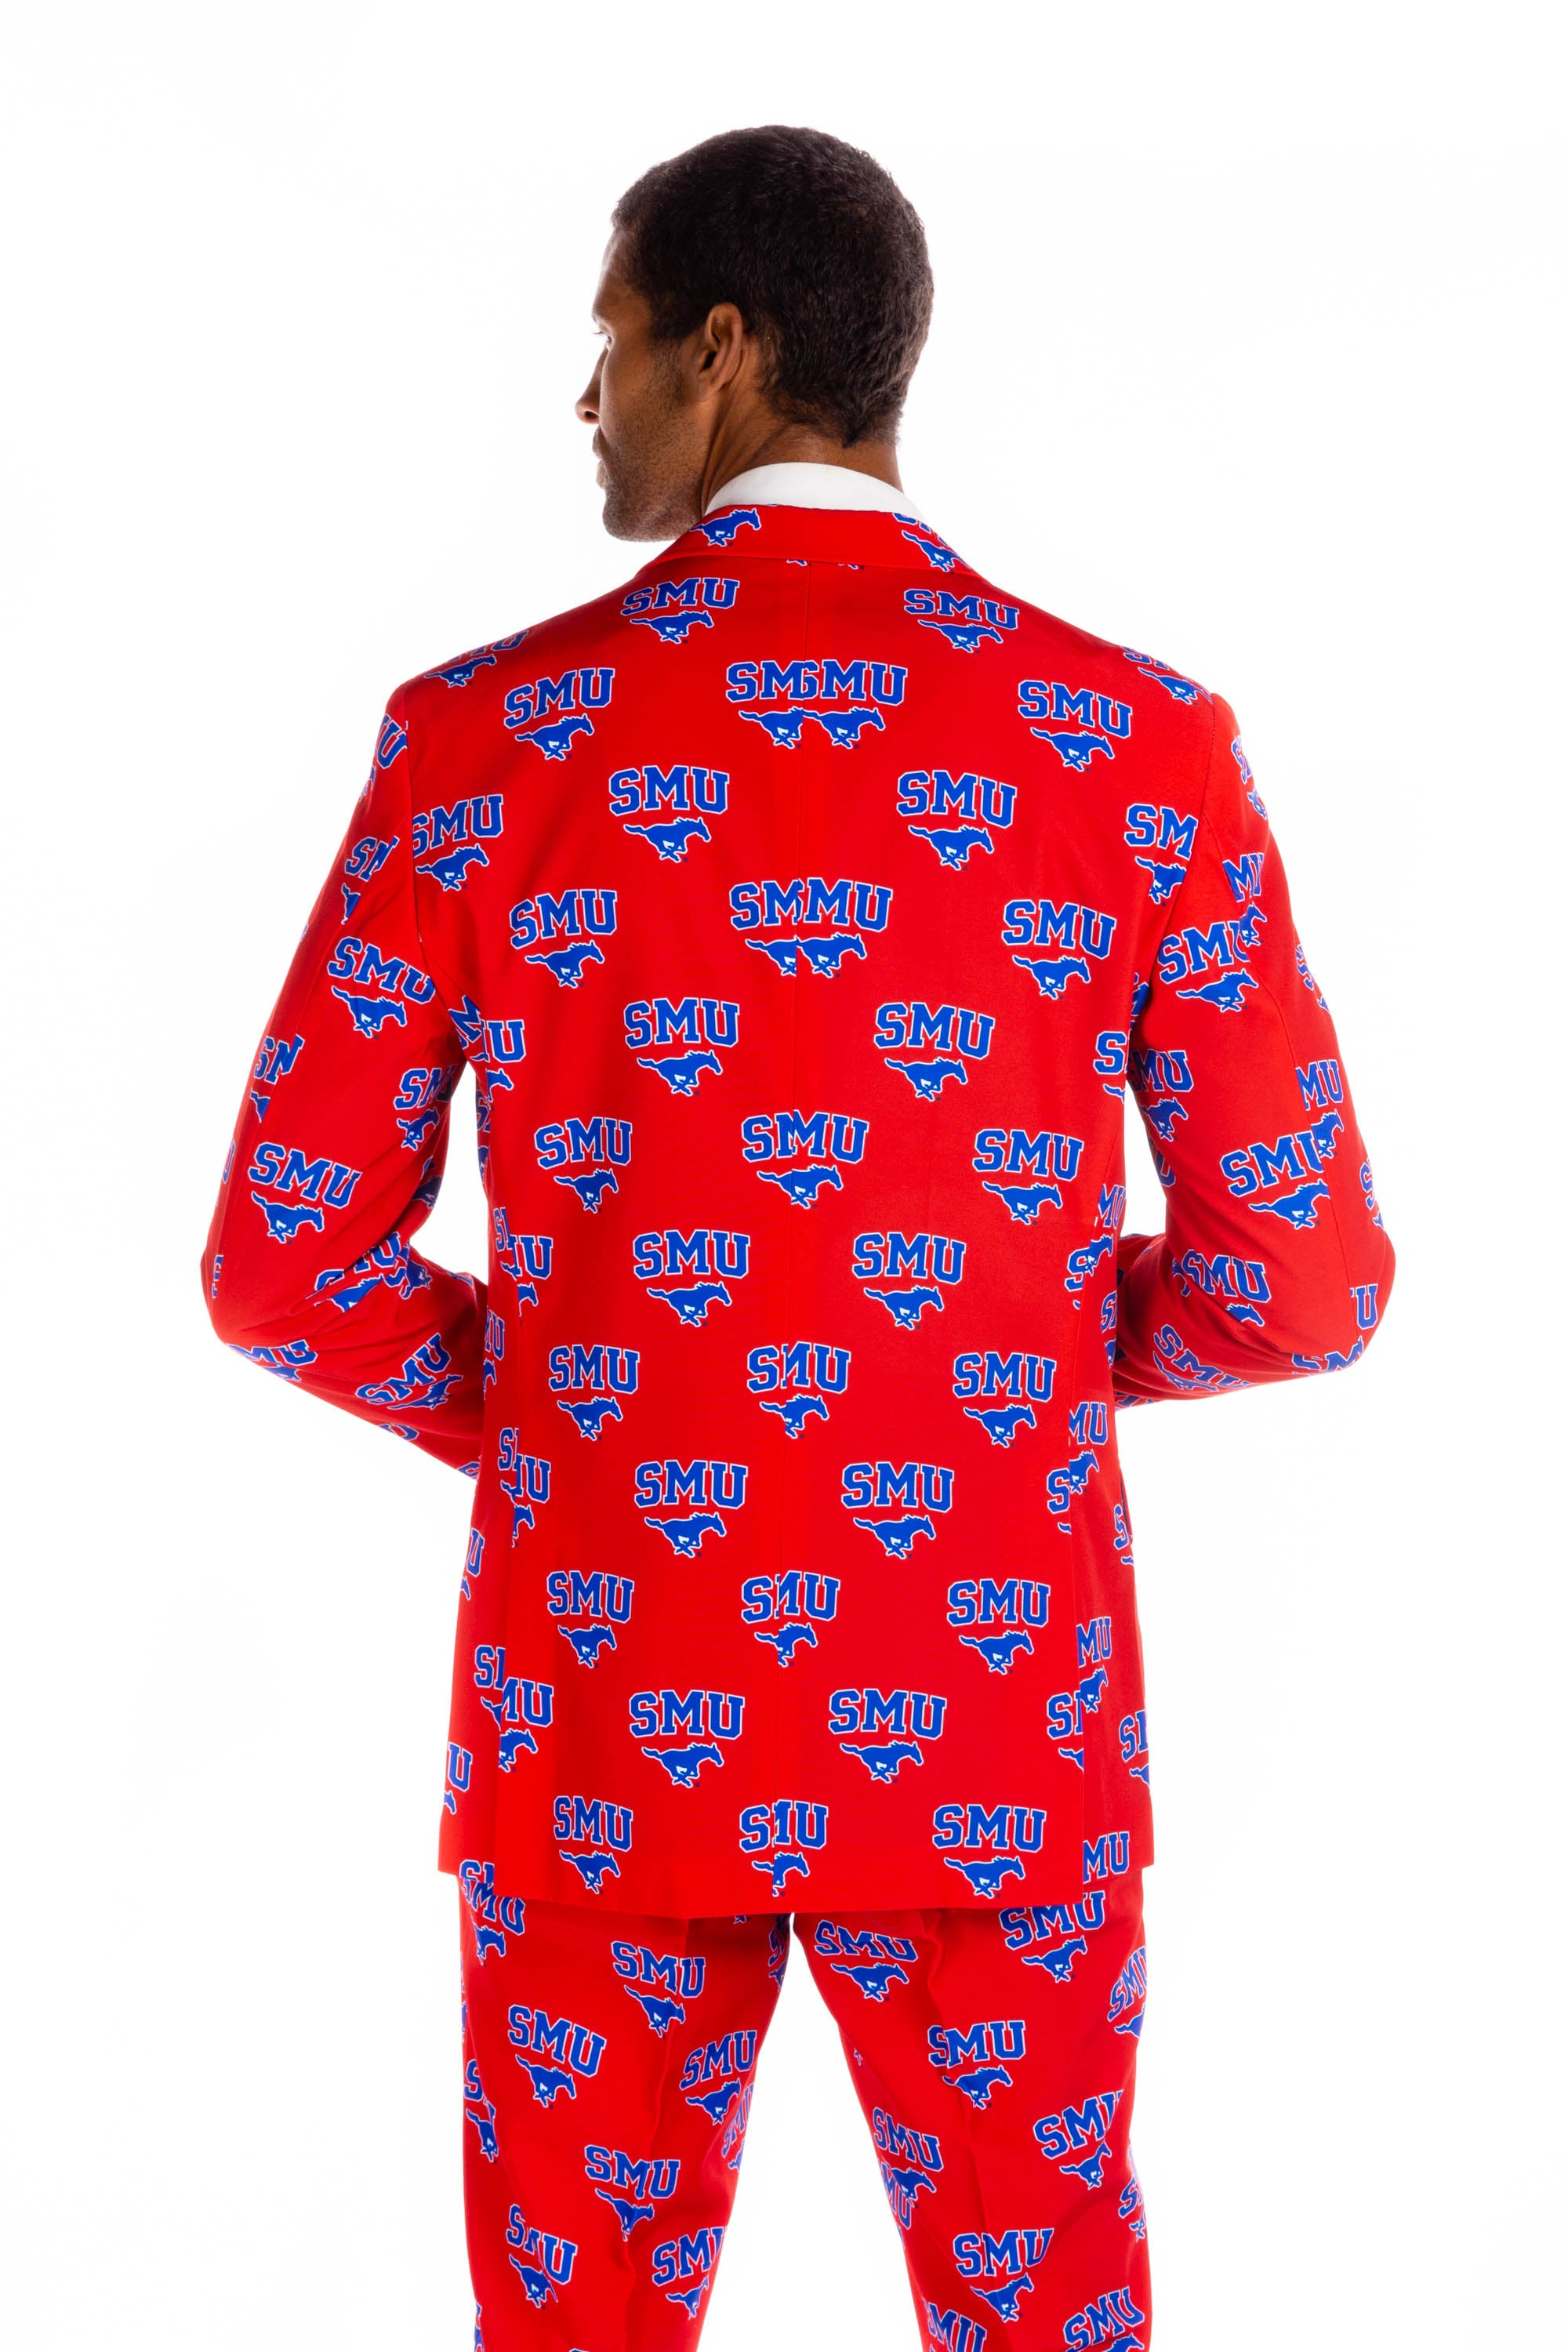 SMU Gameday Blazer